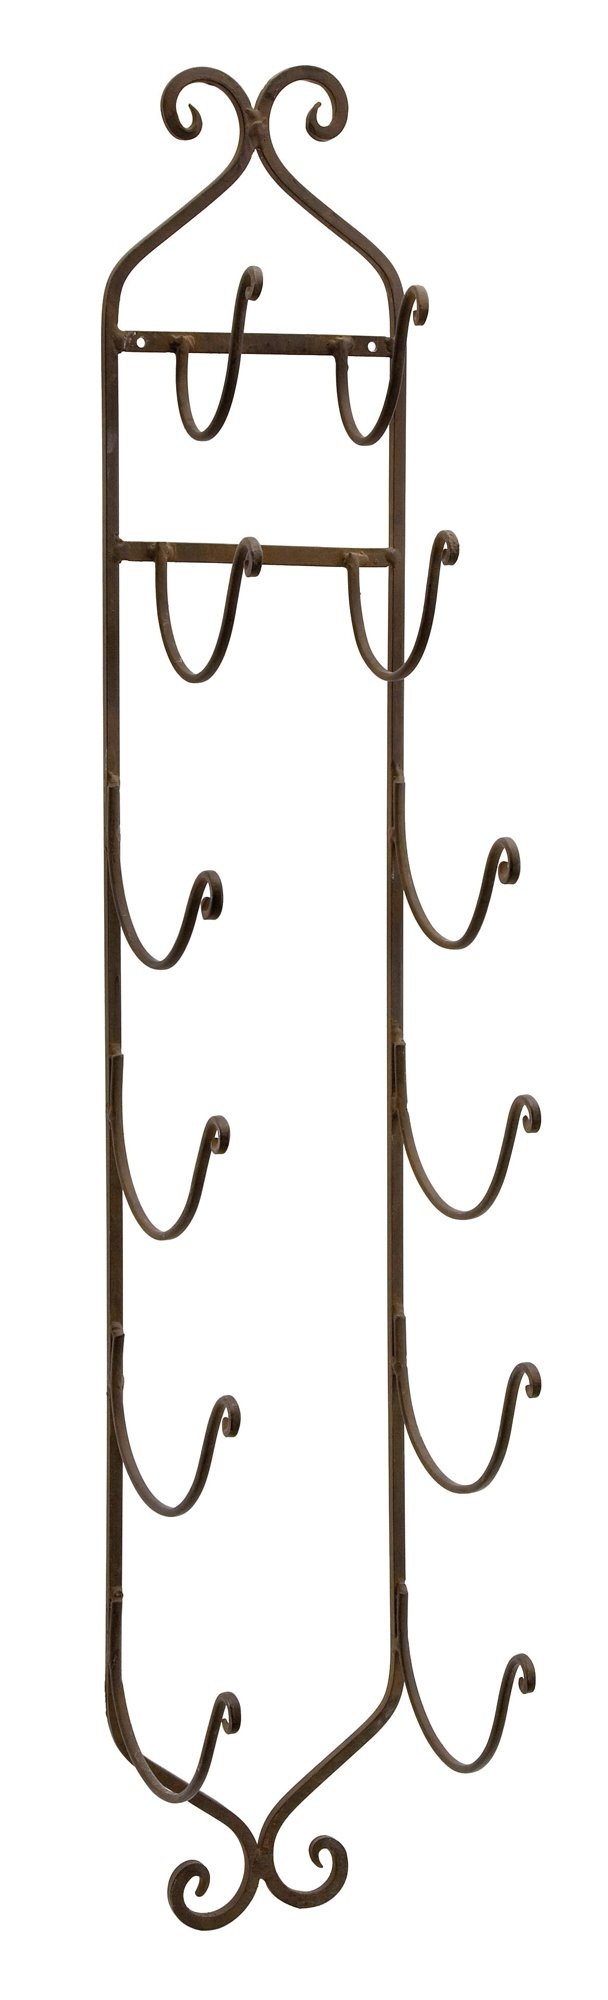 Imax 9748 Towel/Wine Rack in Dark Brown – Compact, Wall Mounted Metal Display Rack for Organizing Towels, Wine Bottles, Hats. Home Storage and Organizing